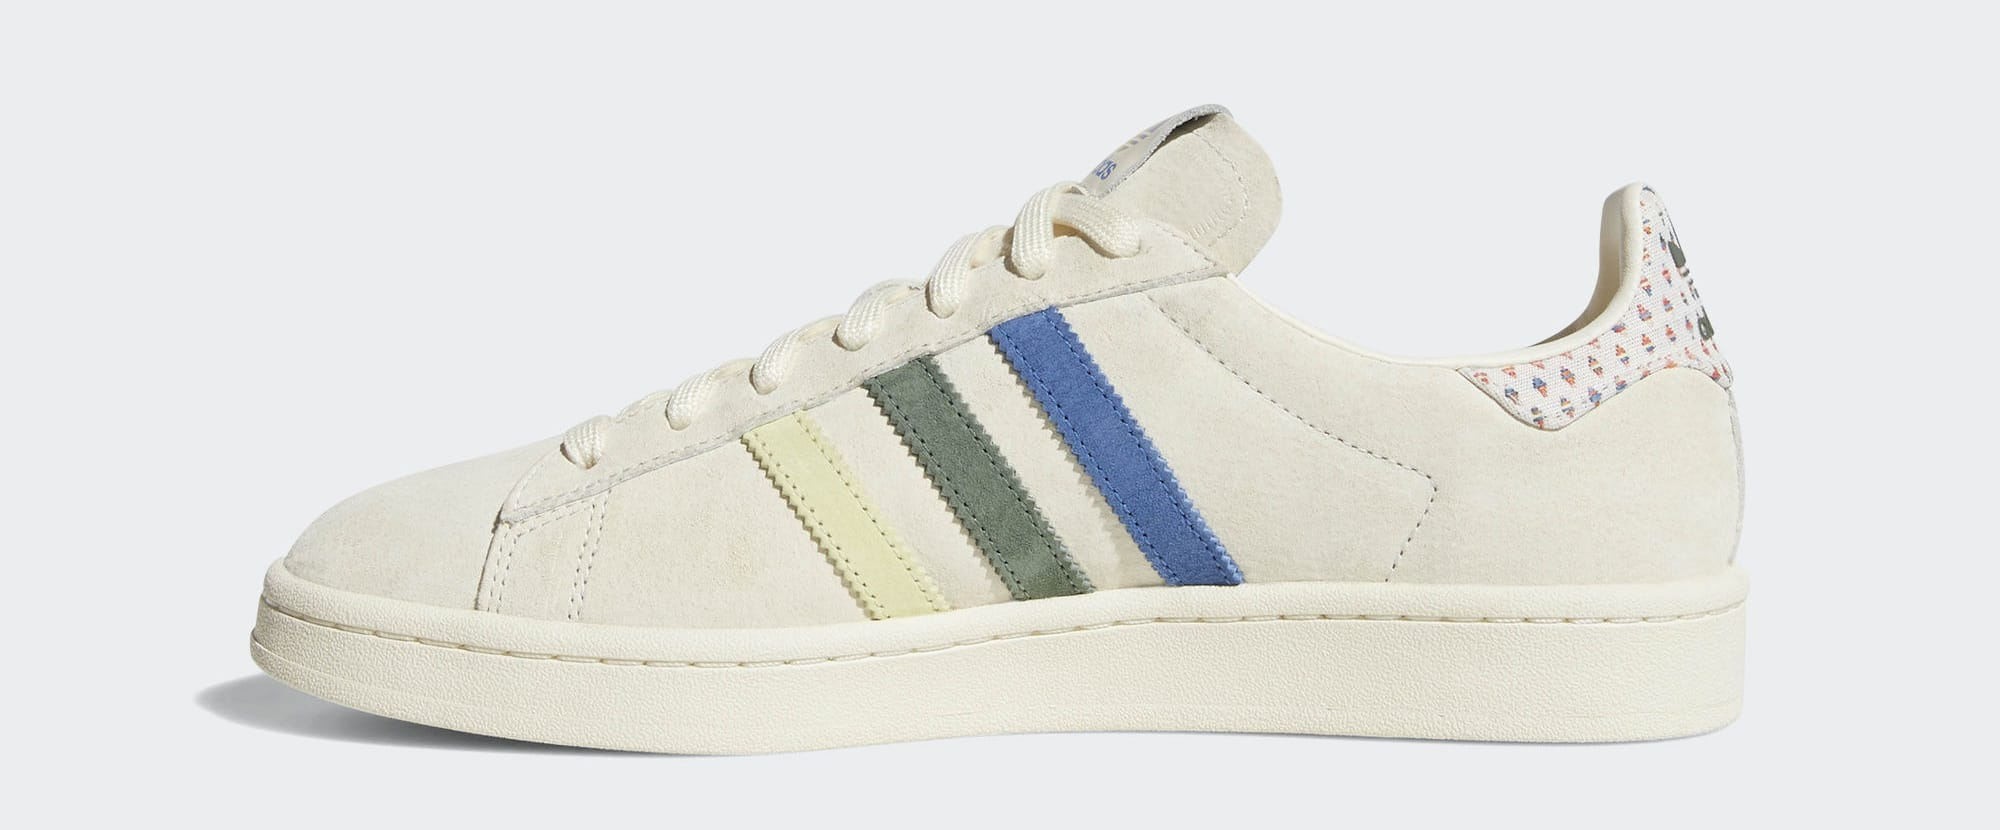 Adidas 2018 LGBT Pride Pack Release Date | Sole Collector